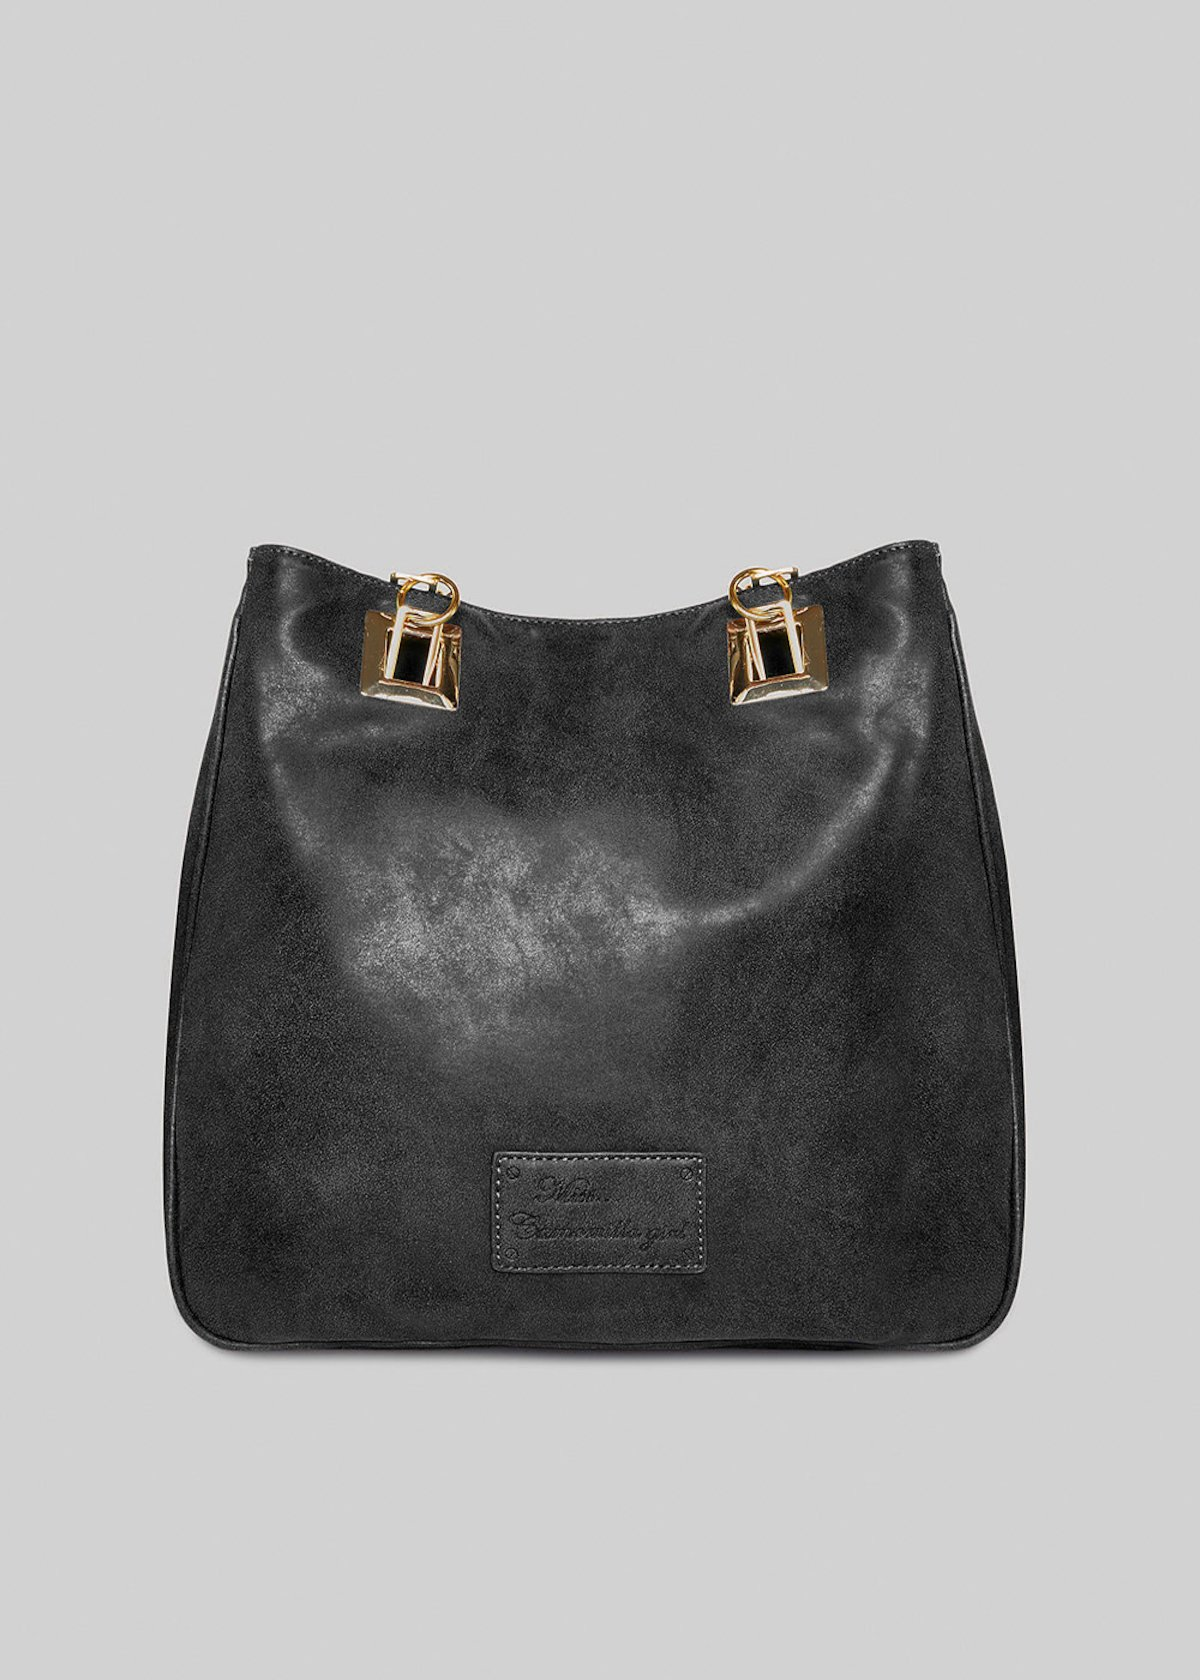 Shopping bag Mmissbruss in ecopelle con occhielli  gold square - Black